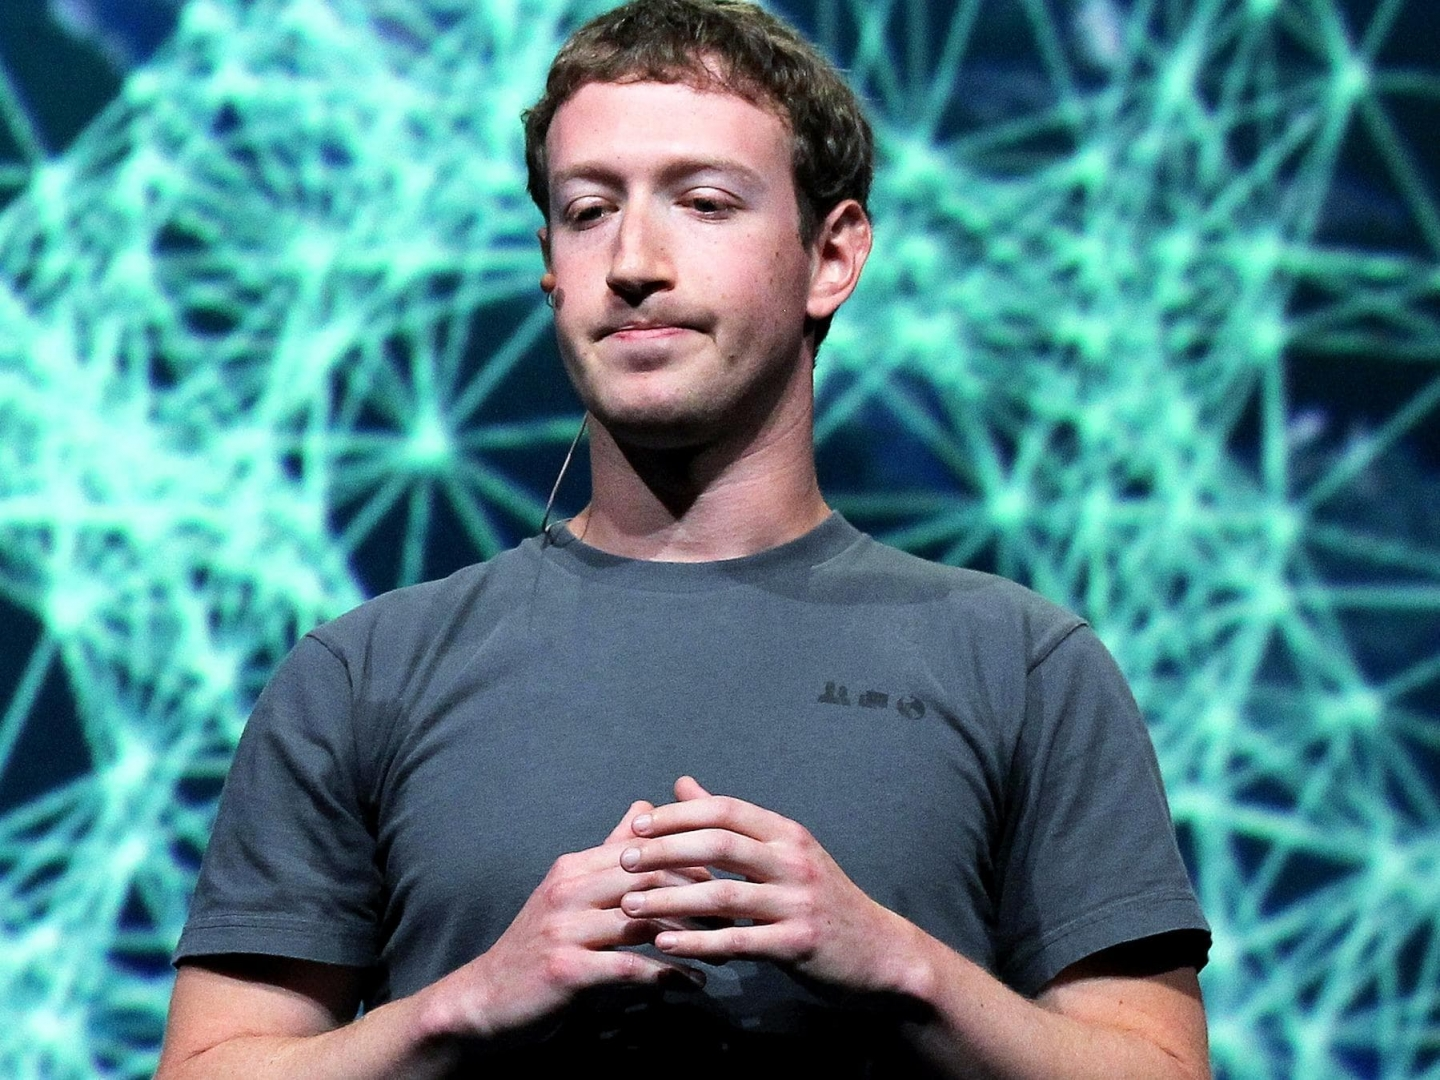 Facebook Is Trying to Make it Even More Tempting for You to Buy Products from the News Feed